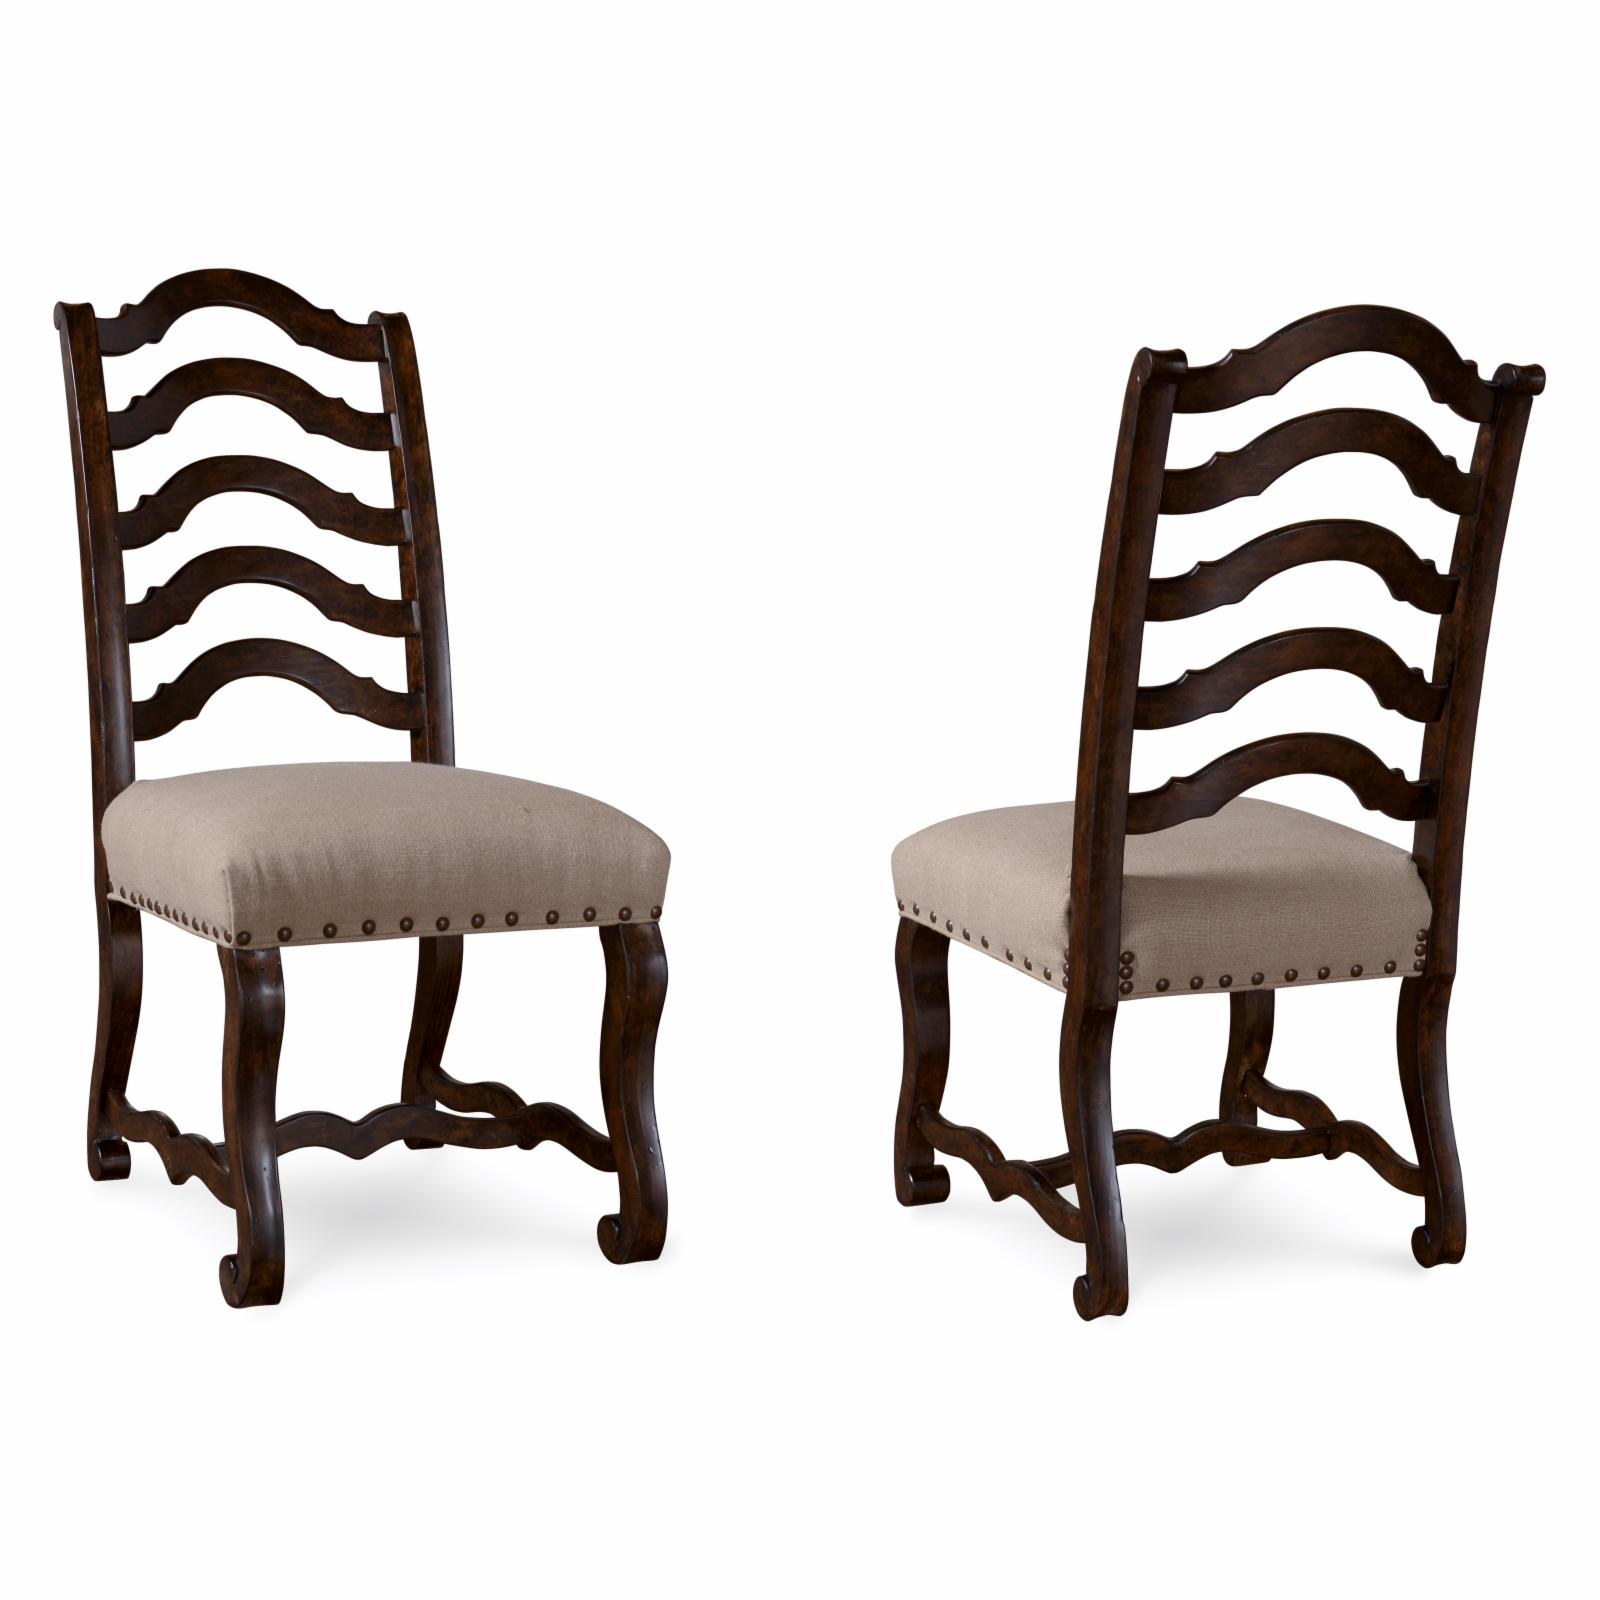 A.R.T. Furniture Collection One Harvest Side Chair - Set of 2 - 217202-2615